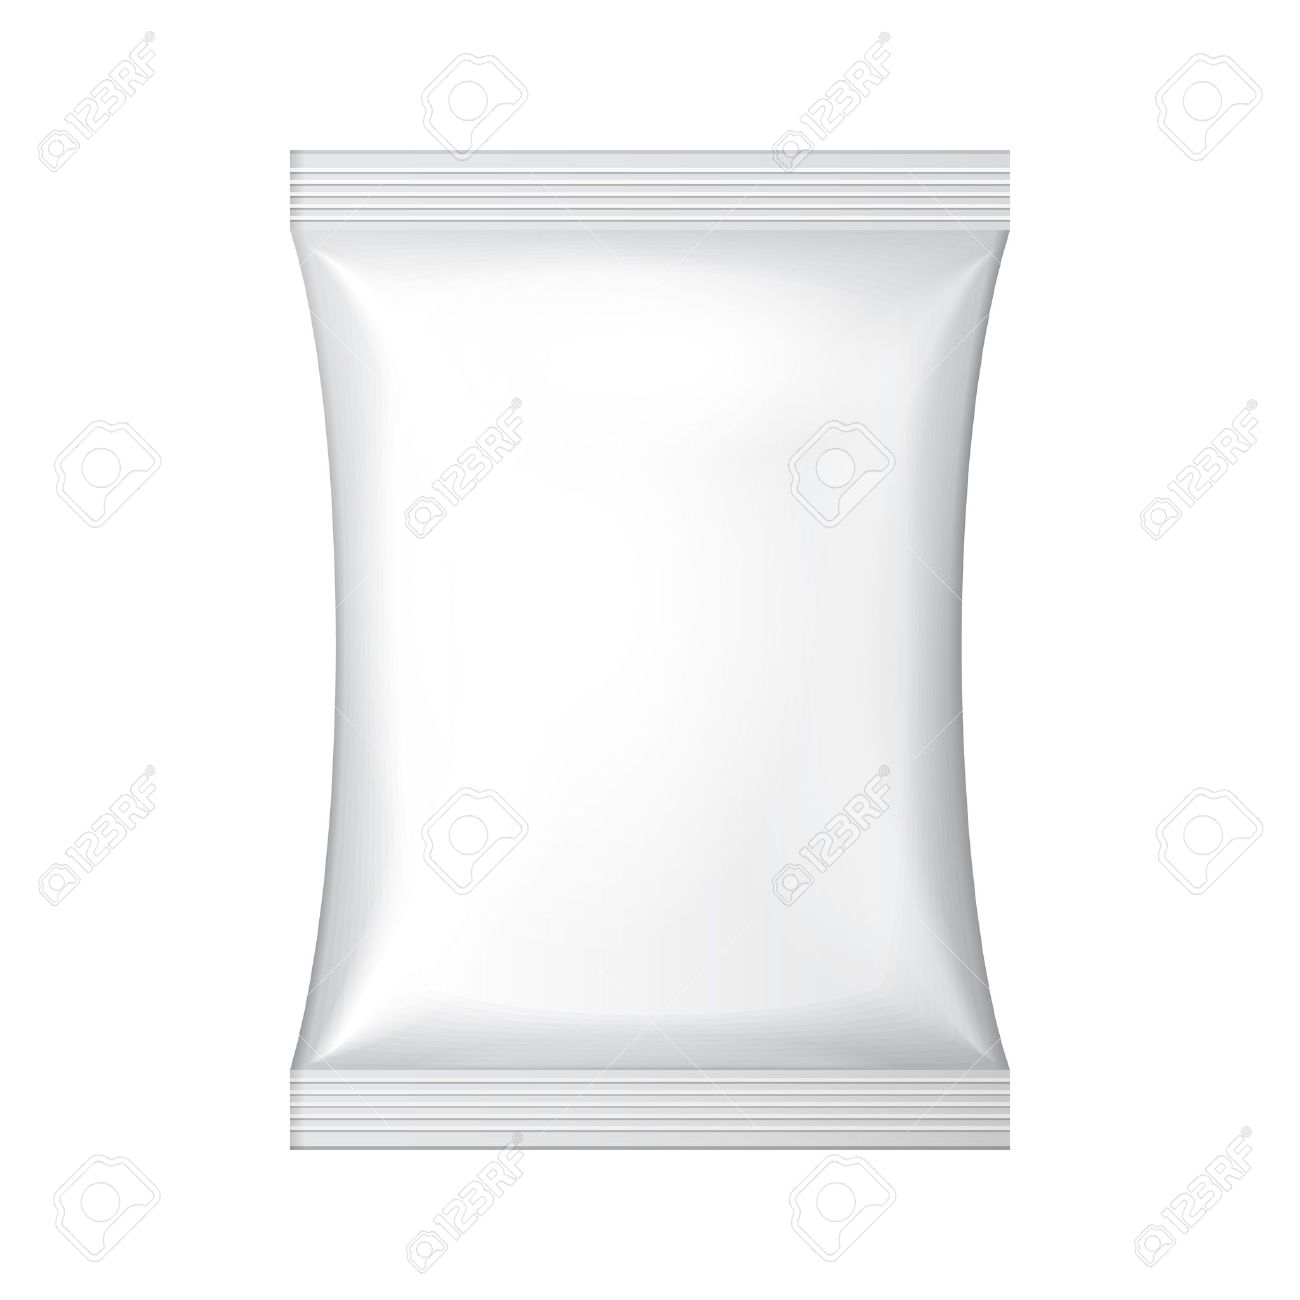 White Blank Foil Food Snack Sachet Bag Hang Slot Packaging For Coffee, Salt, Sugar, Pepper, Spices, Sachet, Sweets, Chips, Cookies Or Candy Plastic Pack Template Ready For Your Design Vector EPS10 - 30317708